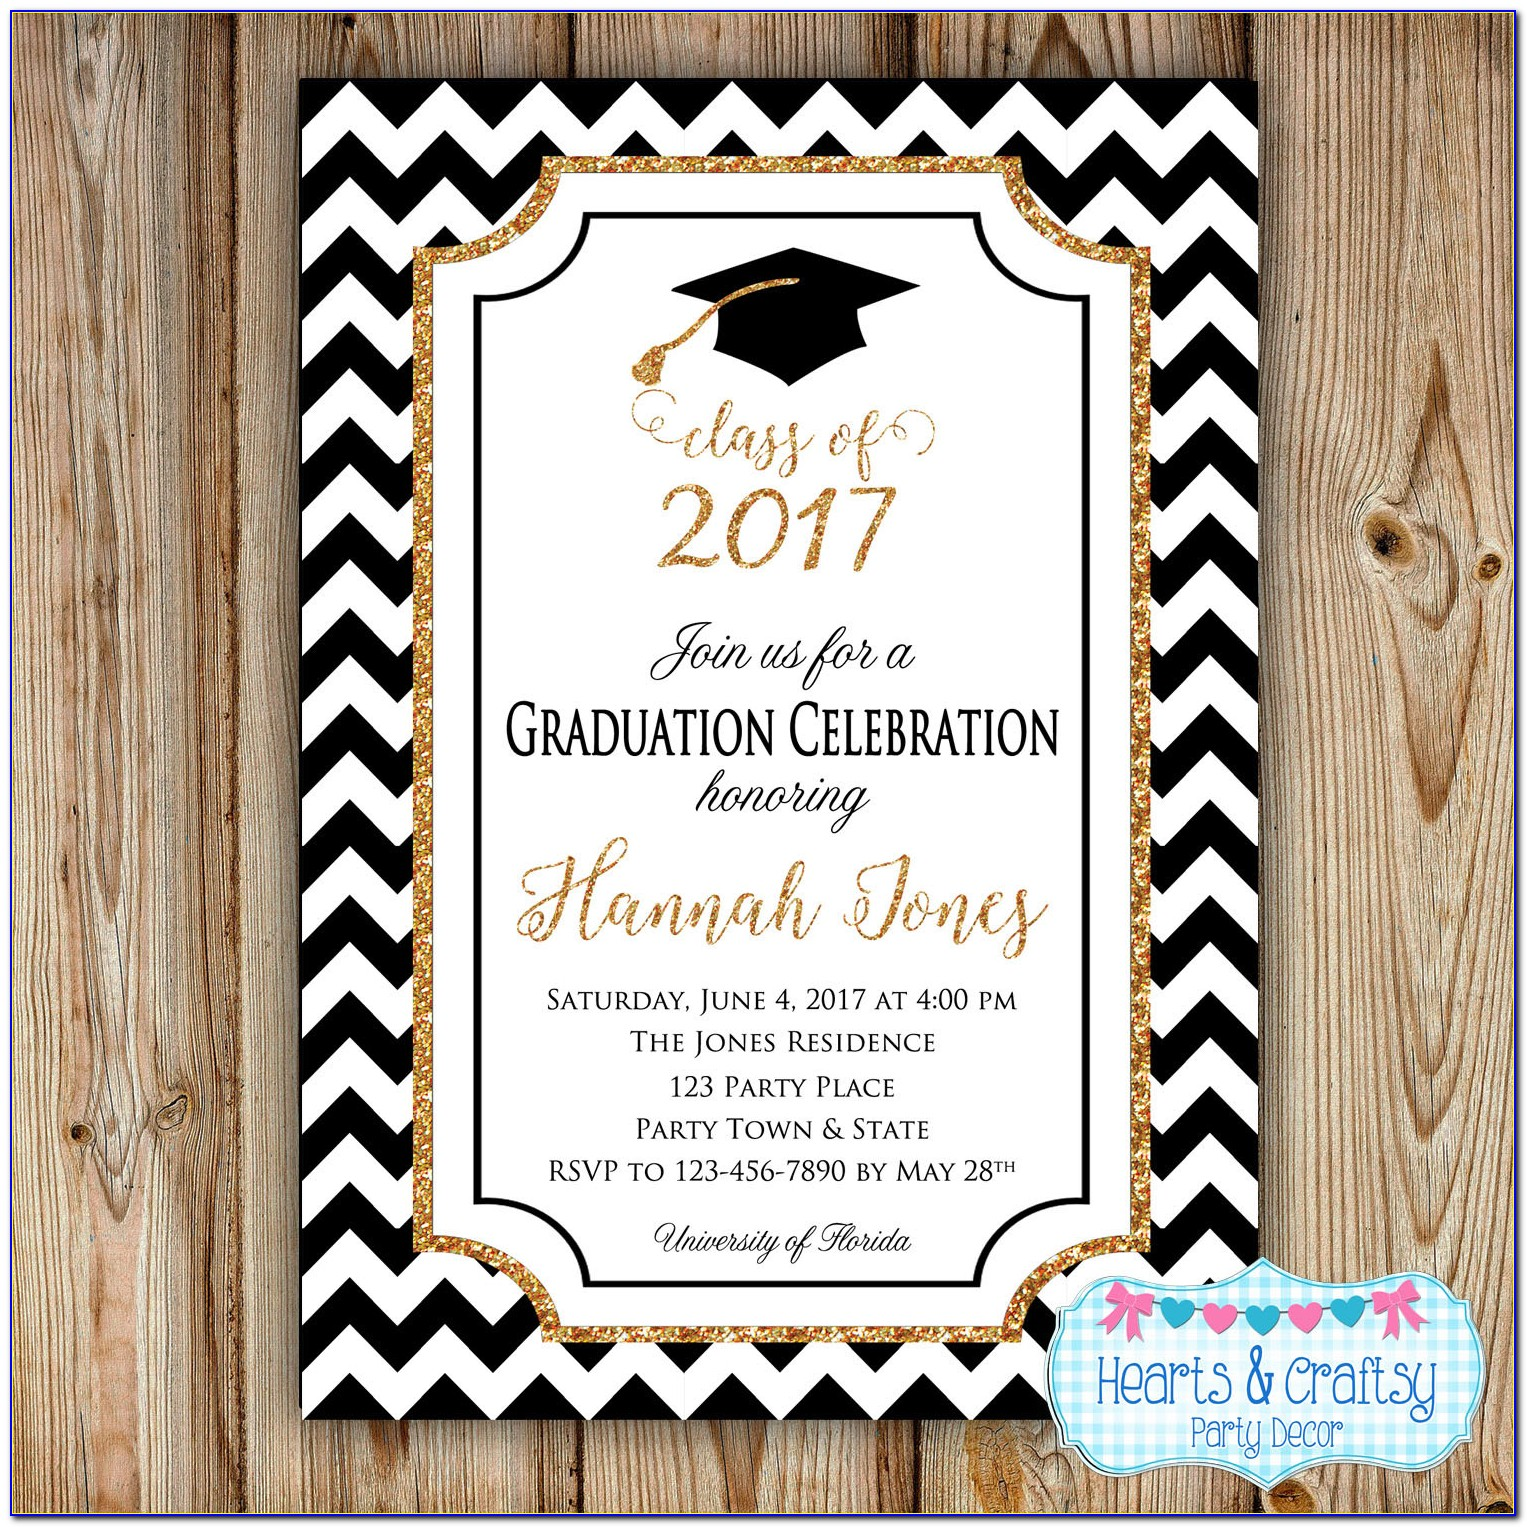 Free Downloadable Graduation Party Invitation Templates